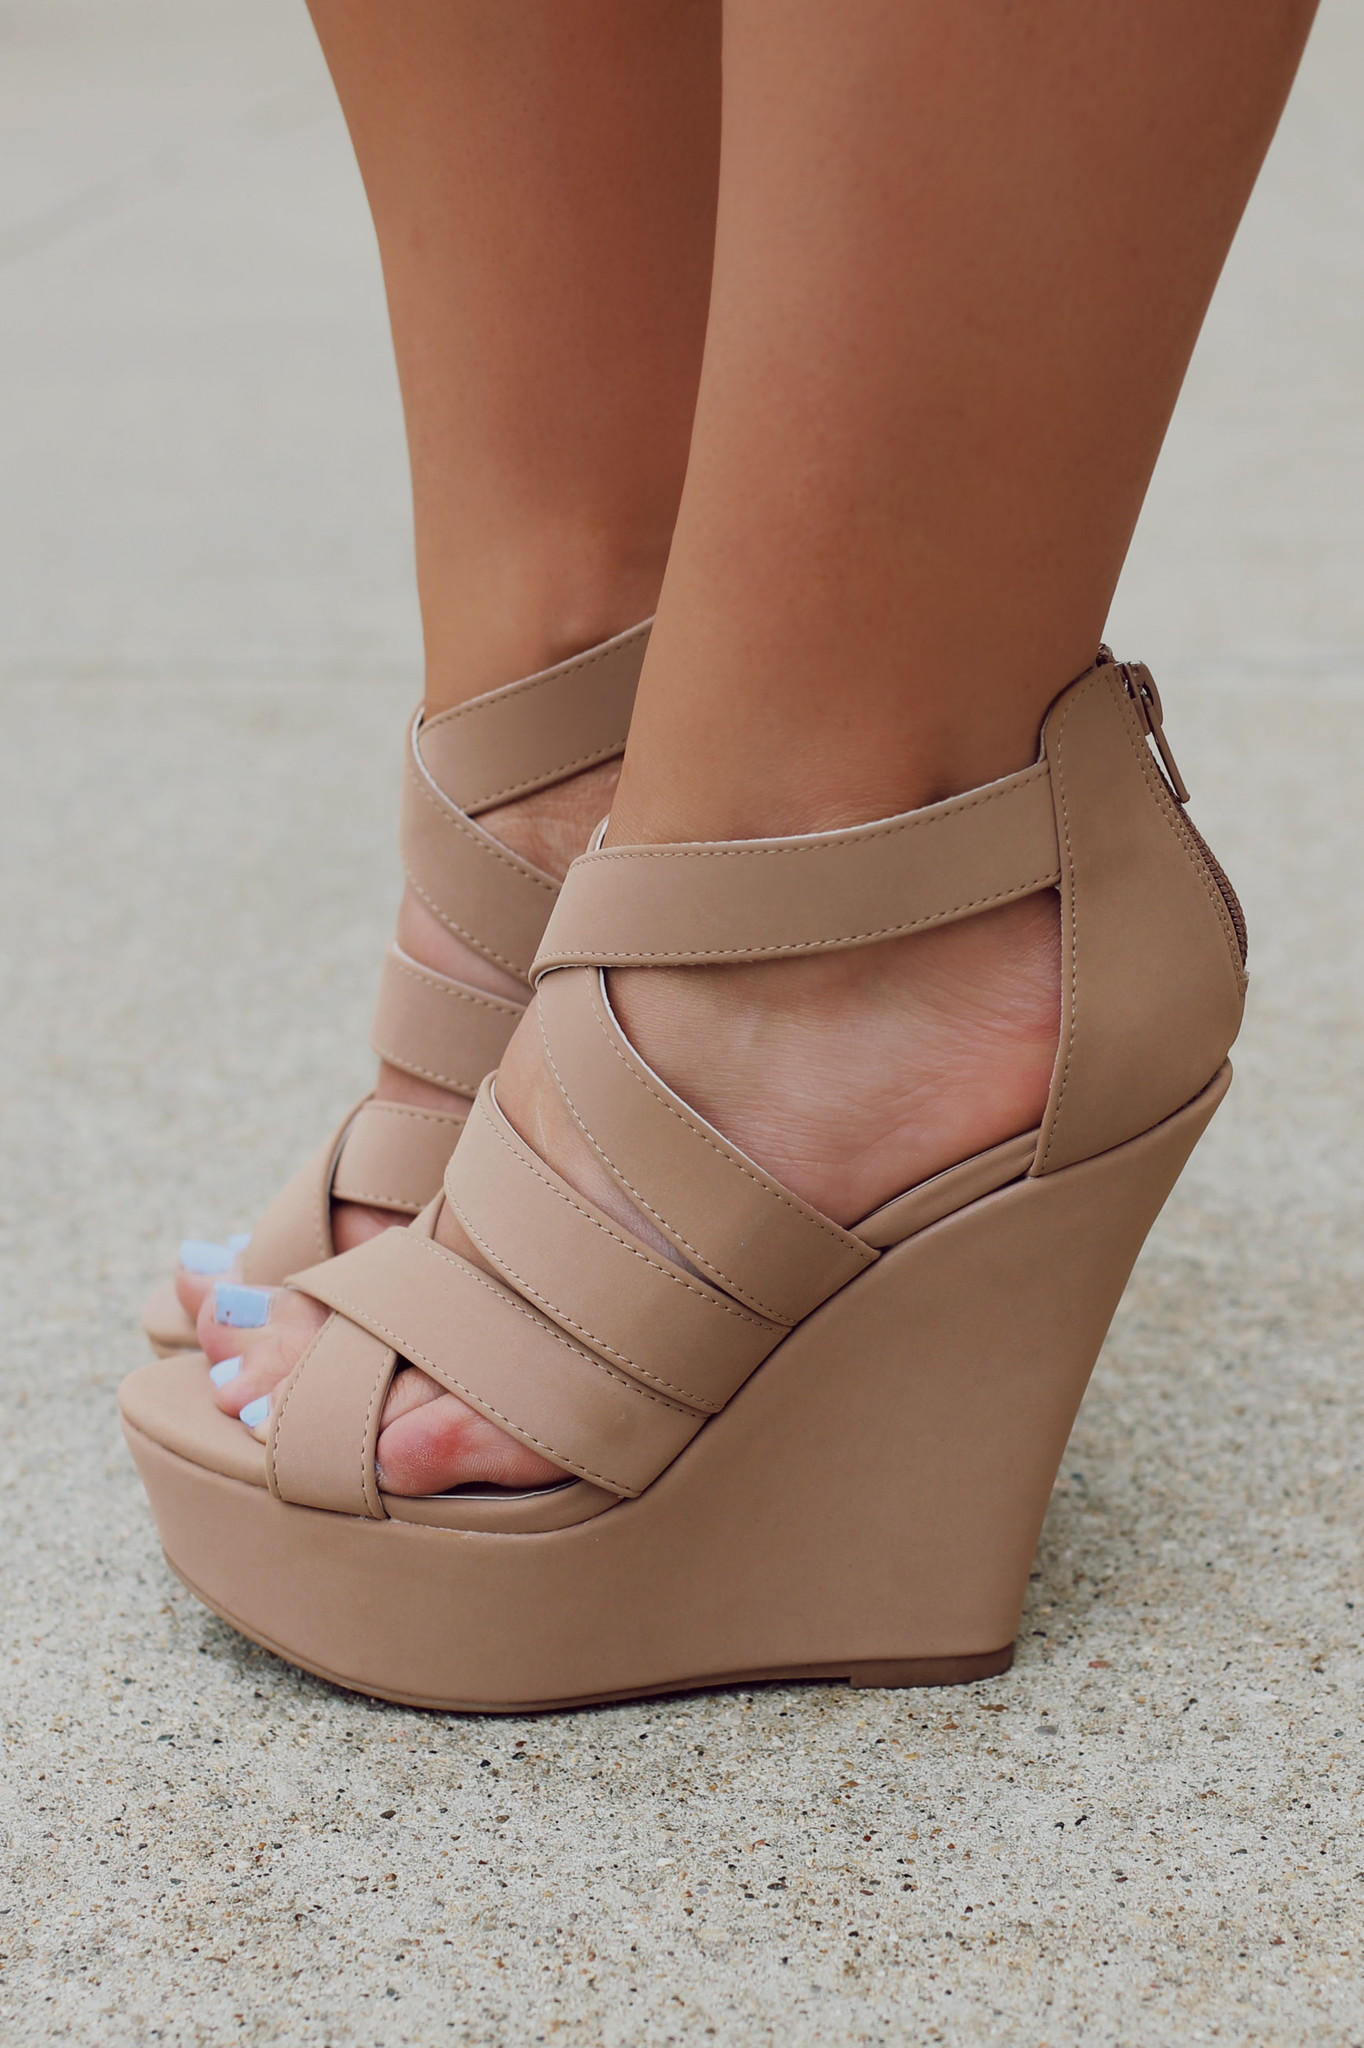 Find great deals on eBay for wedge heel sandals. Shop with confidence.